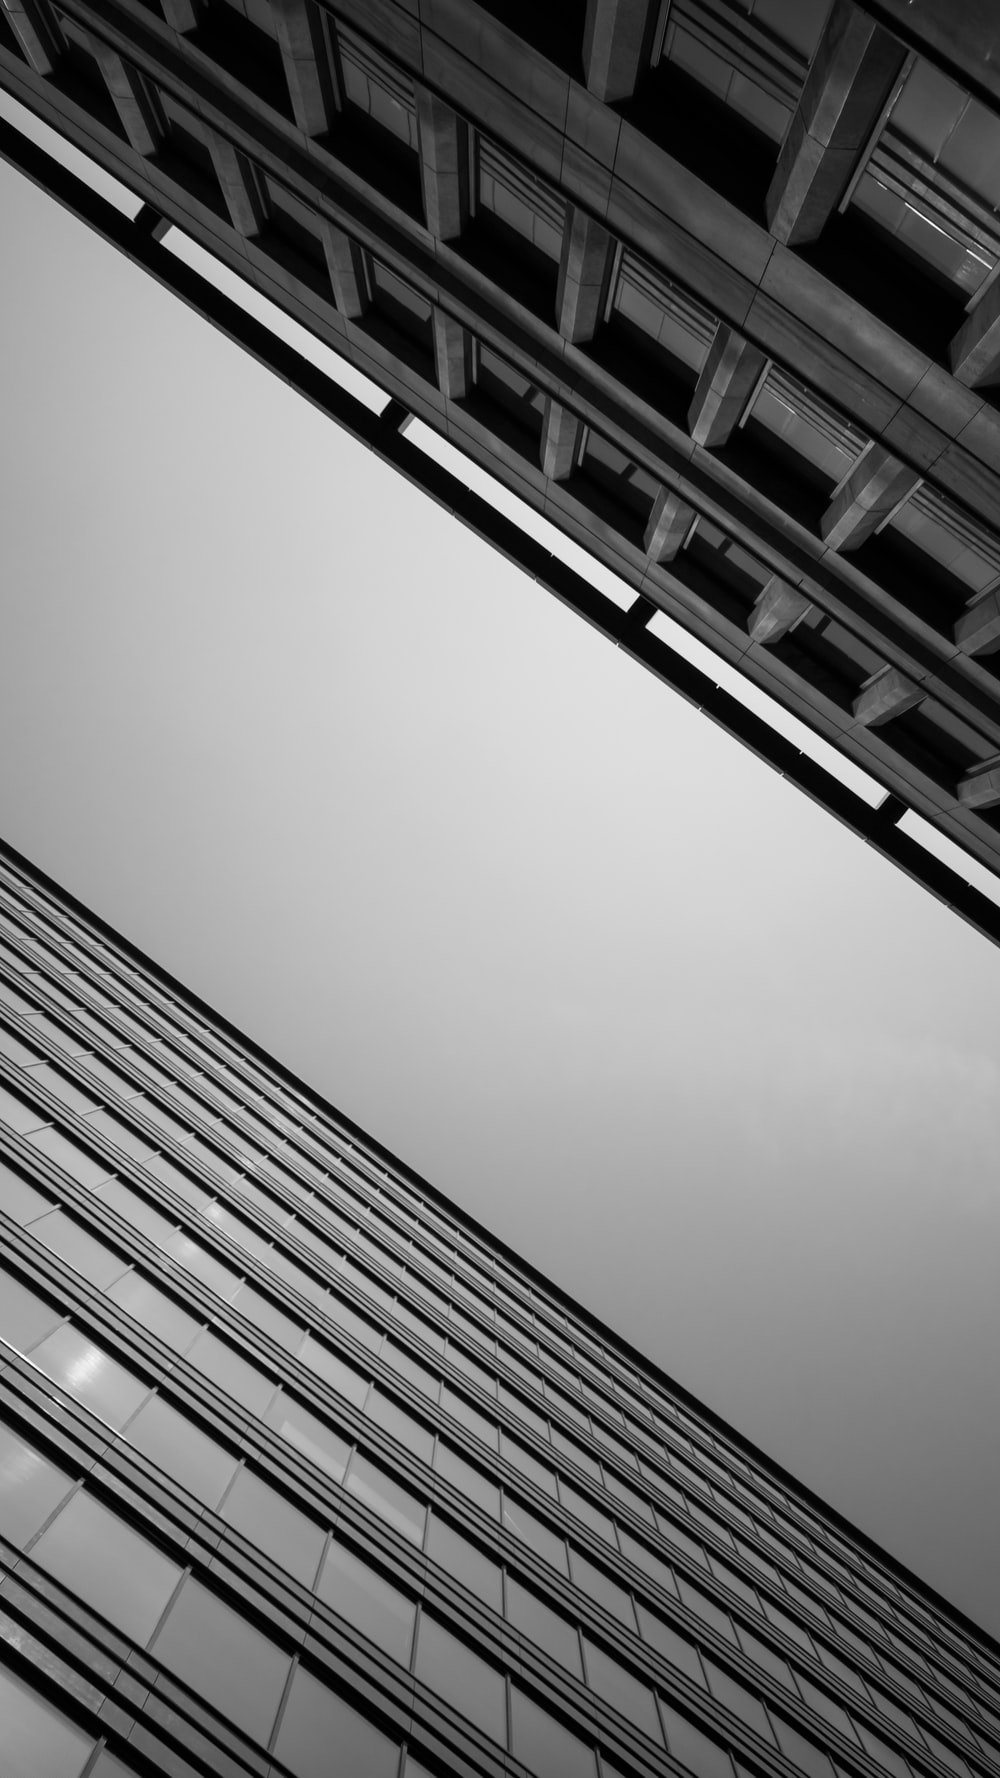 grayscale low-angle photo of buildings